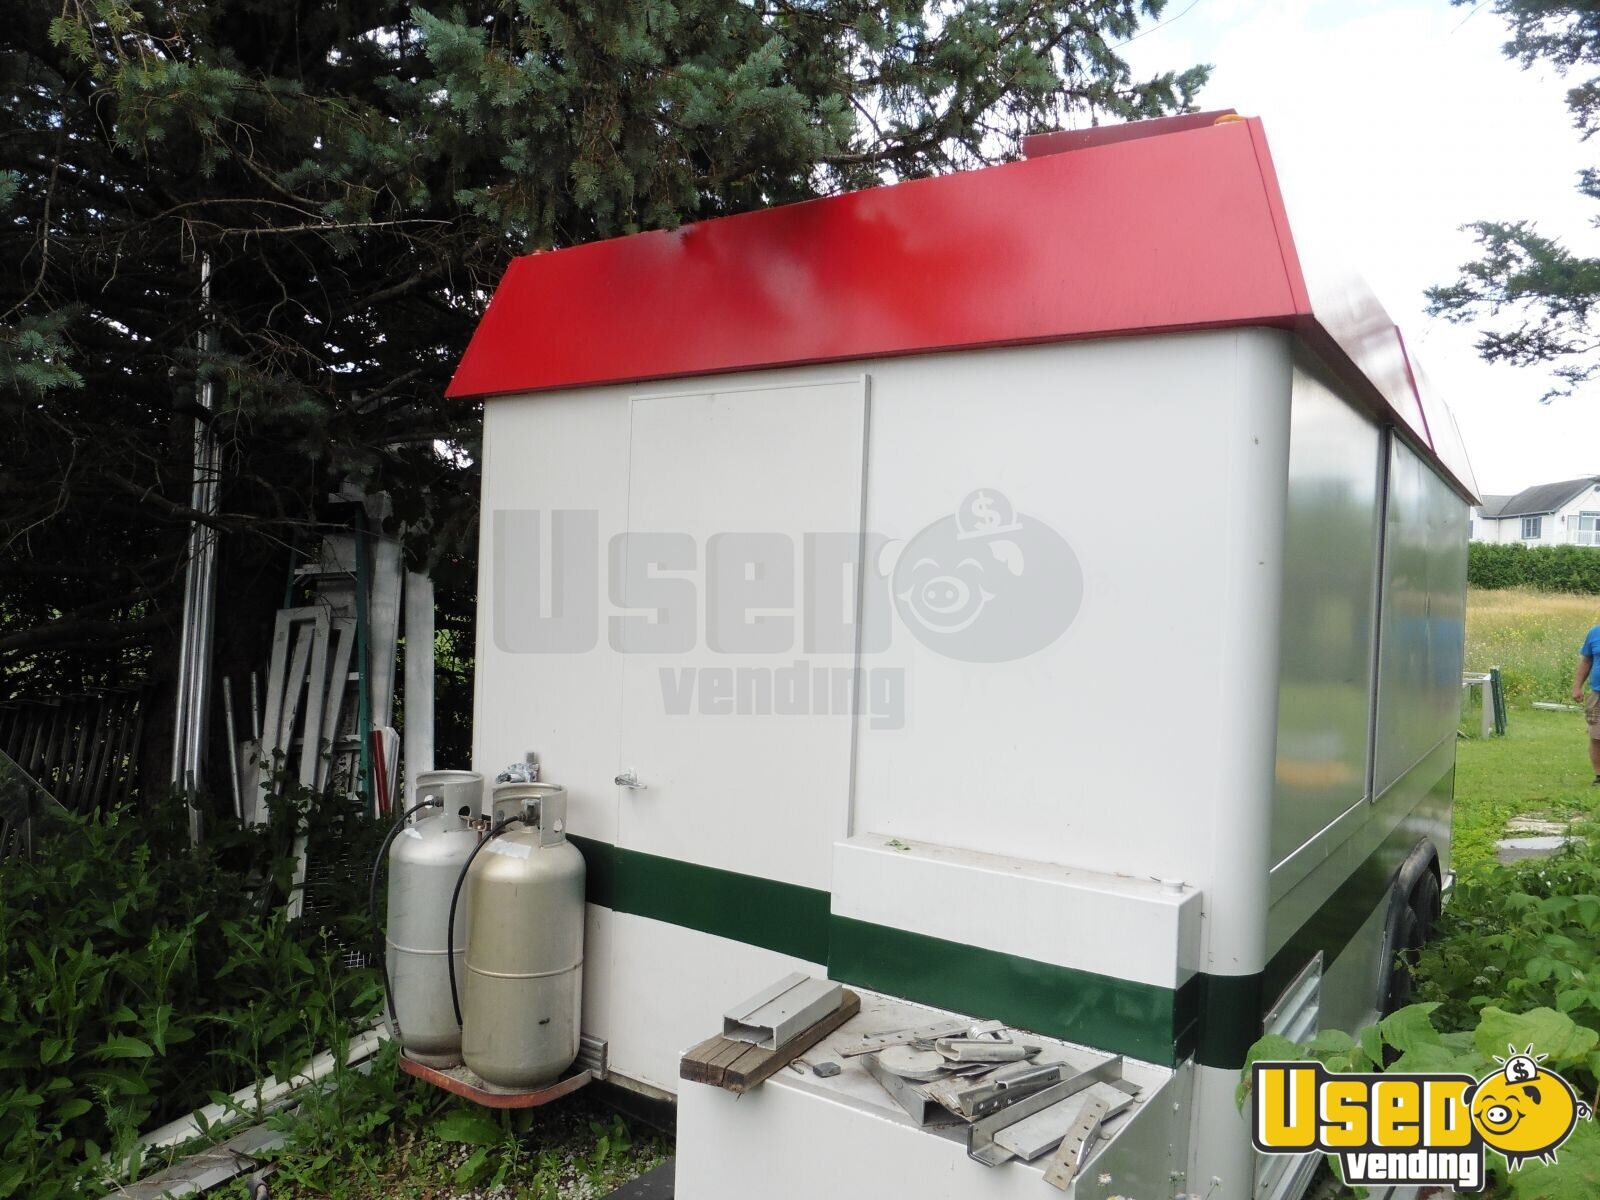 1999 Century All-purpose Food Trailer Awning Vermont for Sale - 3